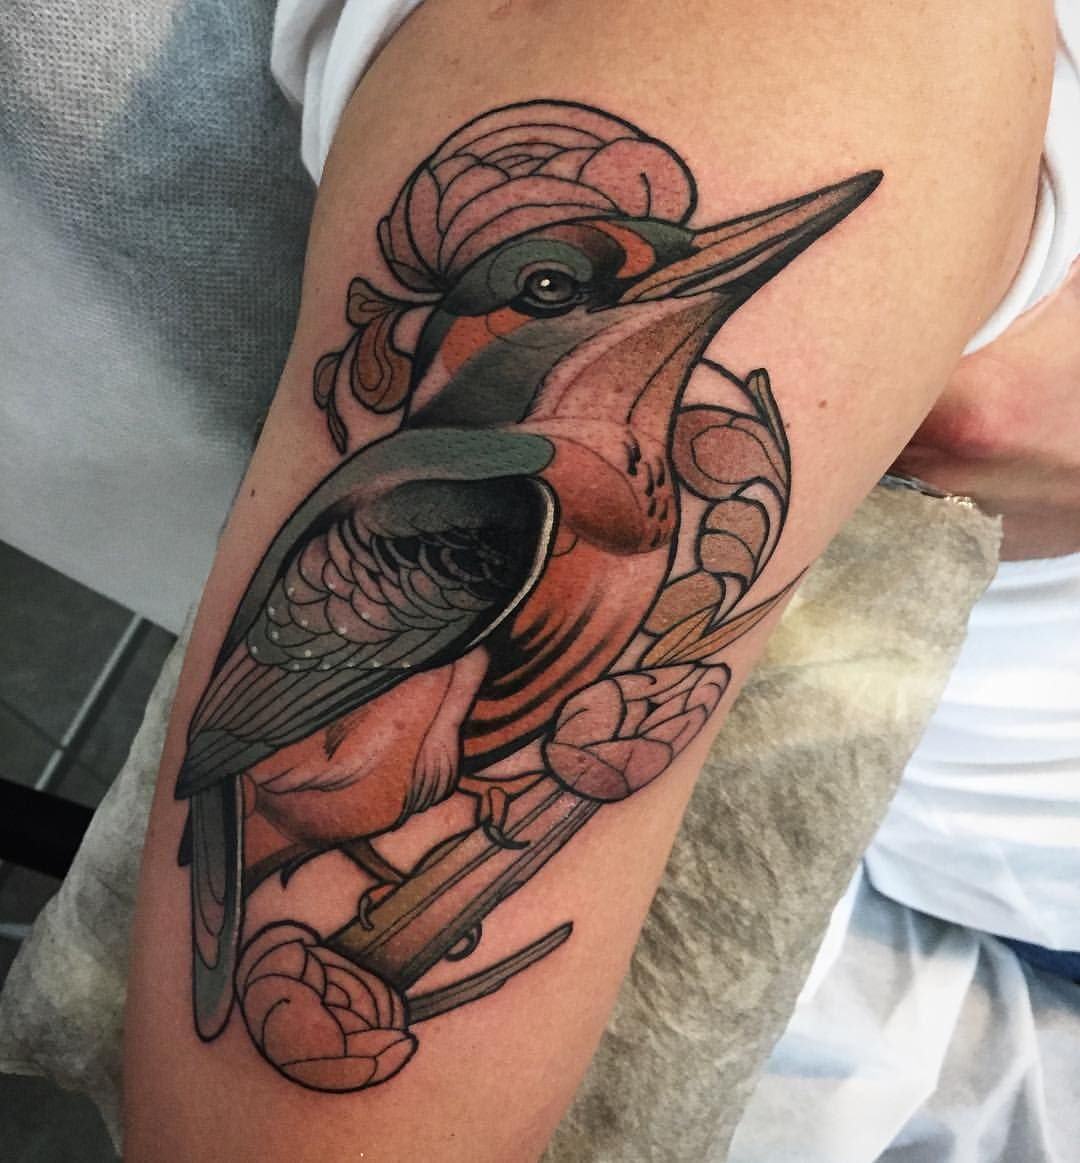 kingfisher for max from today. thank's a lot! 🙏🏽